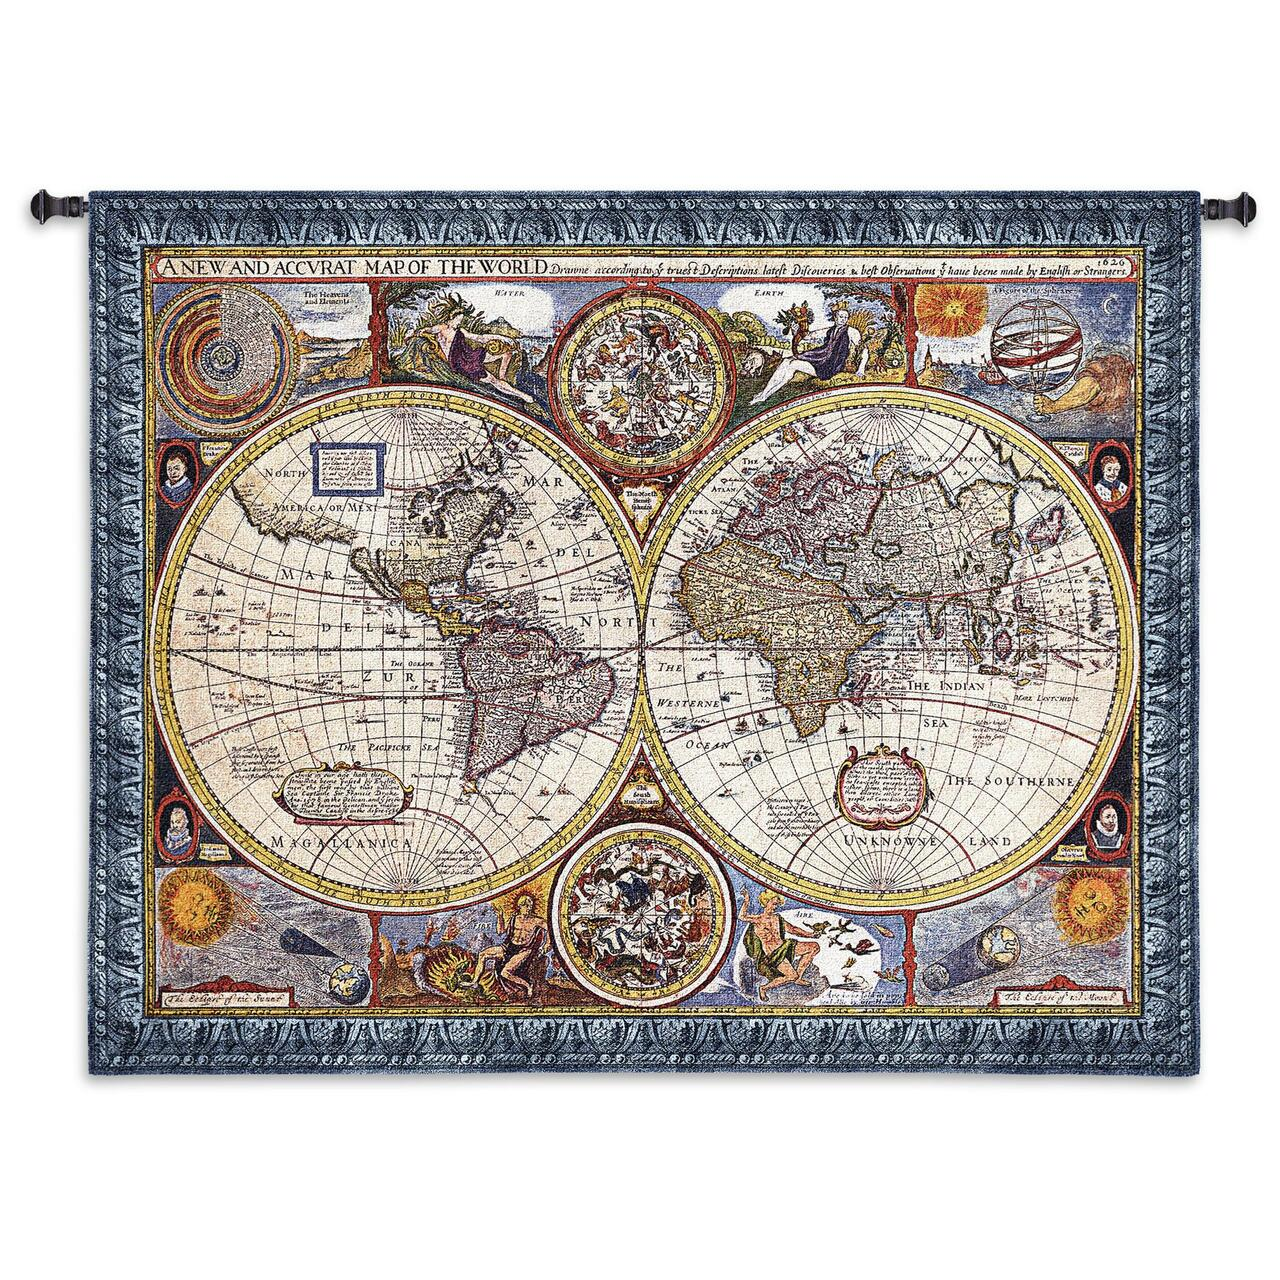 New and Accurate World Map | Woven Tapestry Wall Art Hanging | Vintage Tapestry World Map on world map search engine, world map family, world map art, world map red, world map pillow, world map photography, world map poster, world map engraving, world map bedding, world map painting, world map leather, world map mosaic, world map lithograph, world map furniture, world map in spanish, world map legend, world map cross stitch pattern, world map collage, world map conspiracy, world map america,